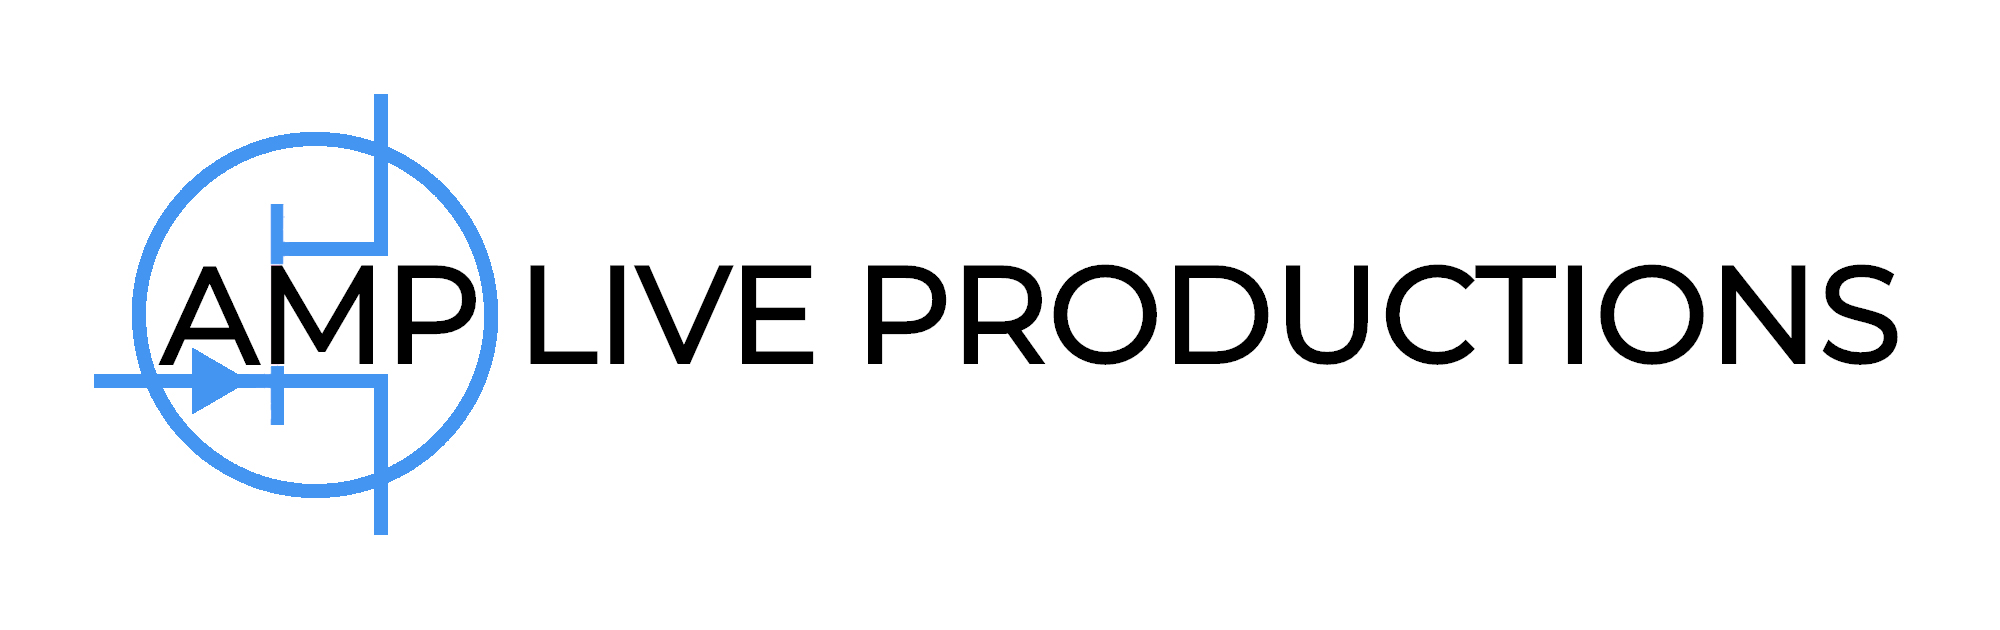 - AMP Live Productions is a Certified Woman-Owned Business. We are a full-service production company providing support in live event logistics and management from ideation to execution.